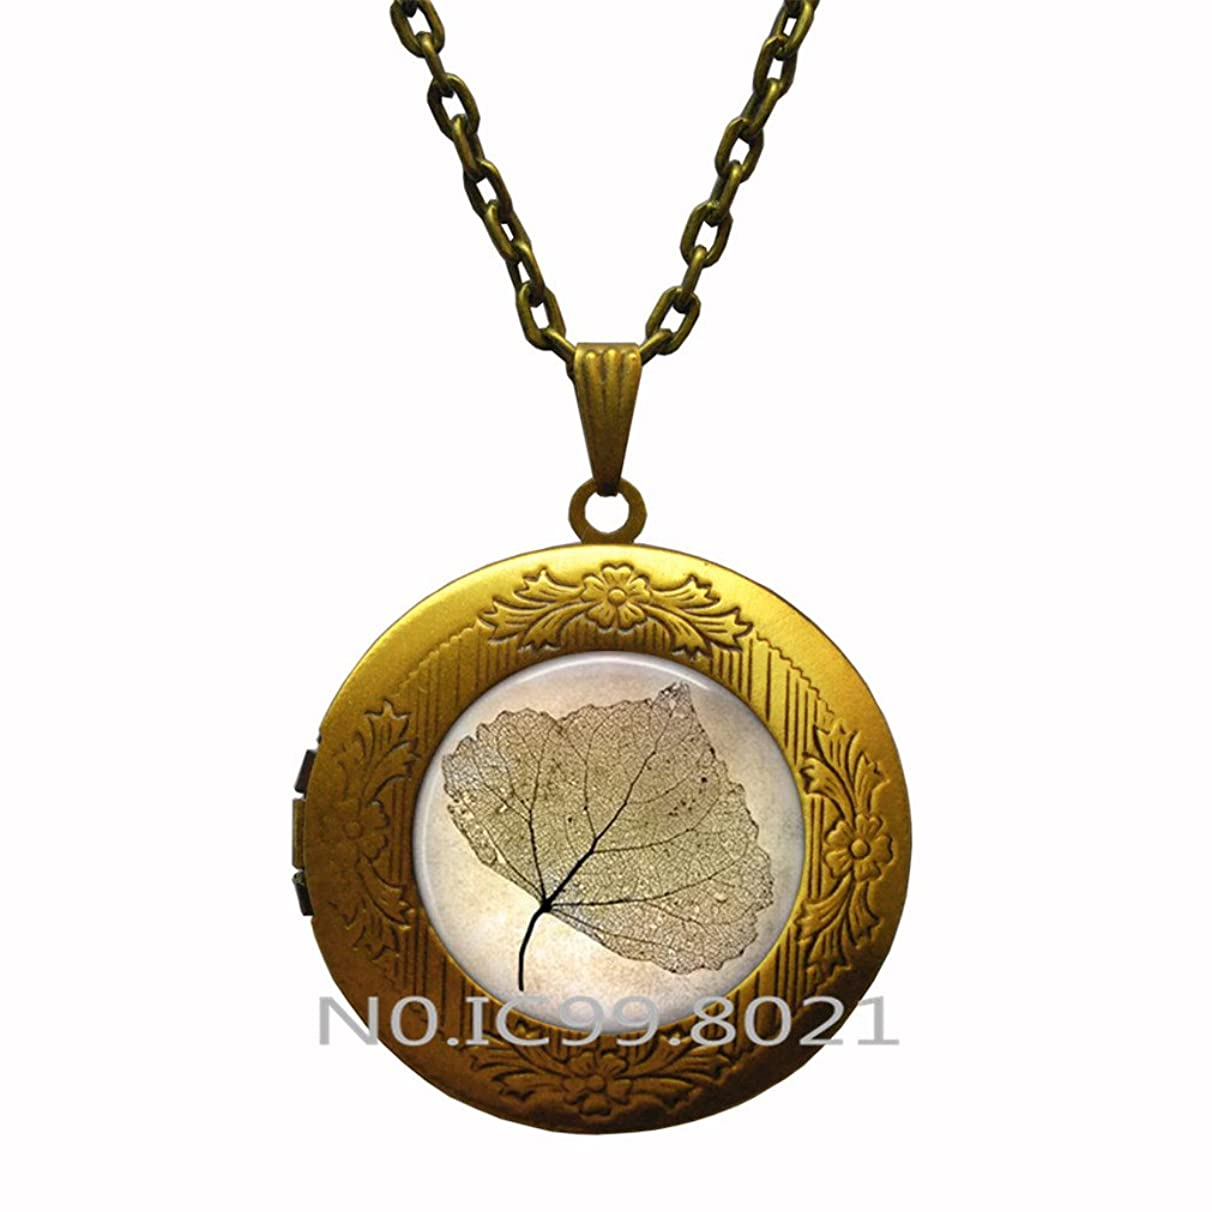 maoqunza Autumn Leaf Silhouette Ginko Leaf - Autumn Jewelry - Botanical - Botany Jewelry - Flora - Transparent Leaf Locket Pendant - Fall Nature Jewelry.XT154